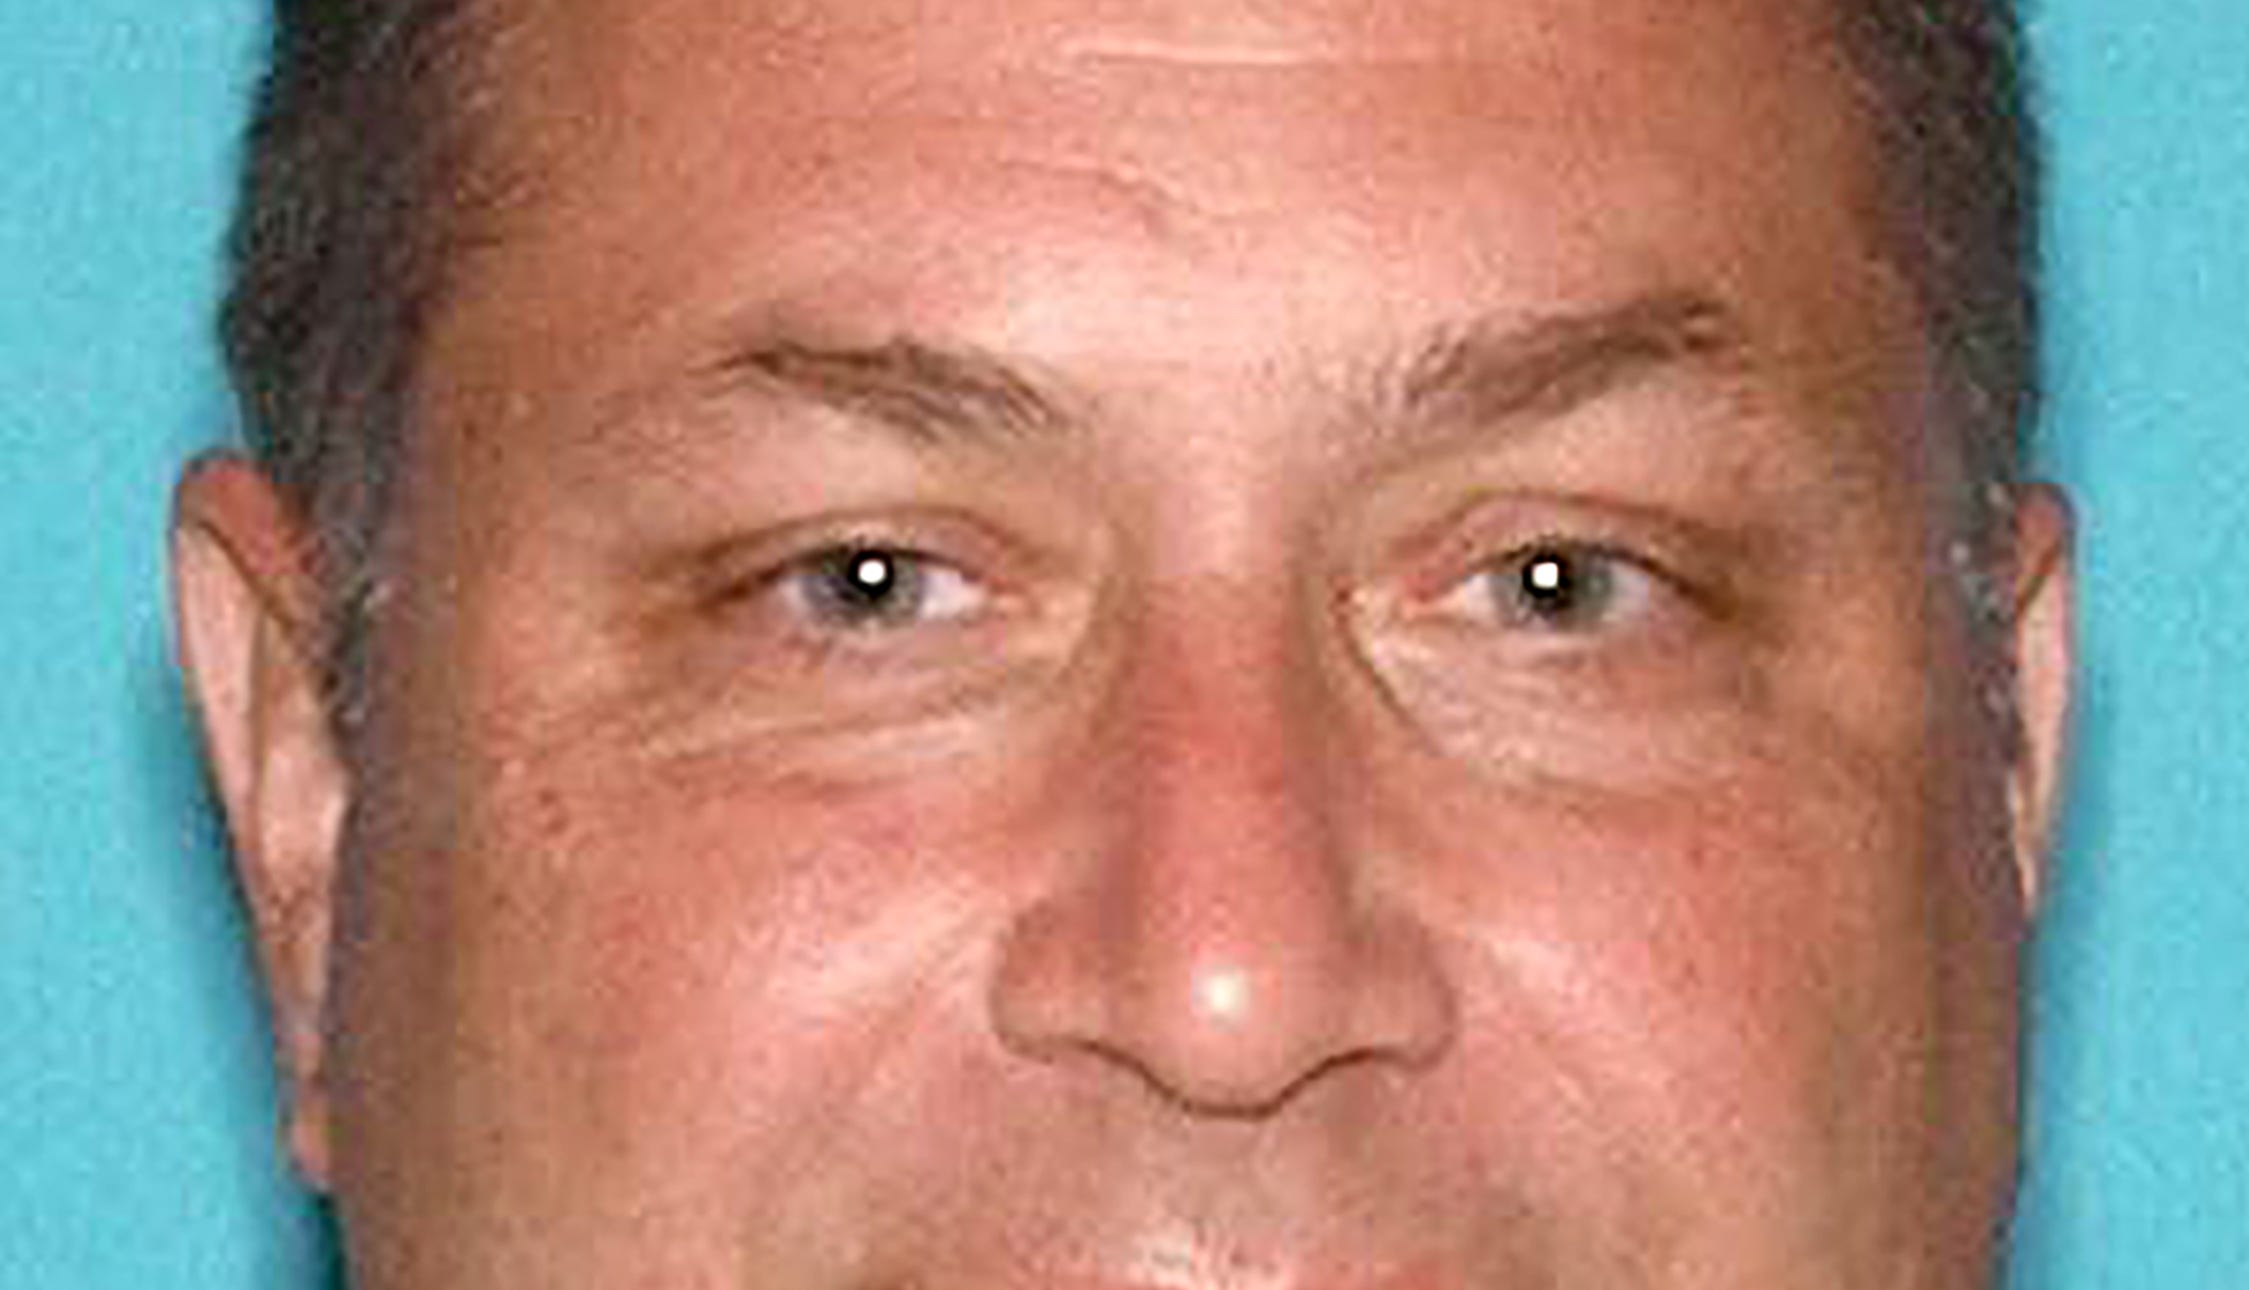 Paul Caneiro, 51, of Ocean Township, New Jersey